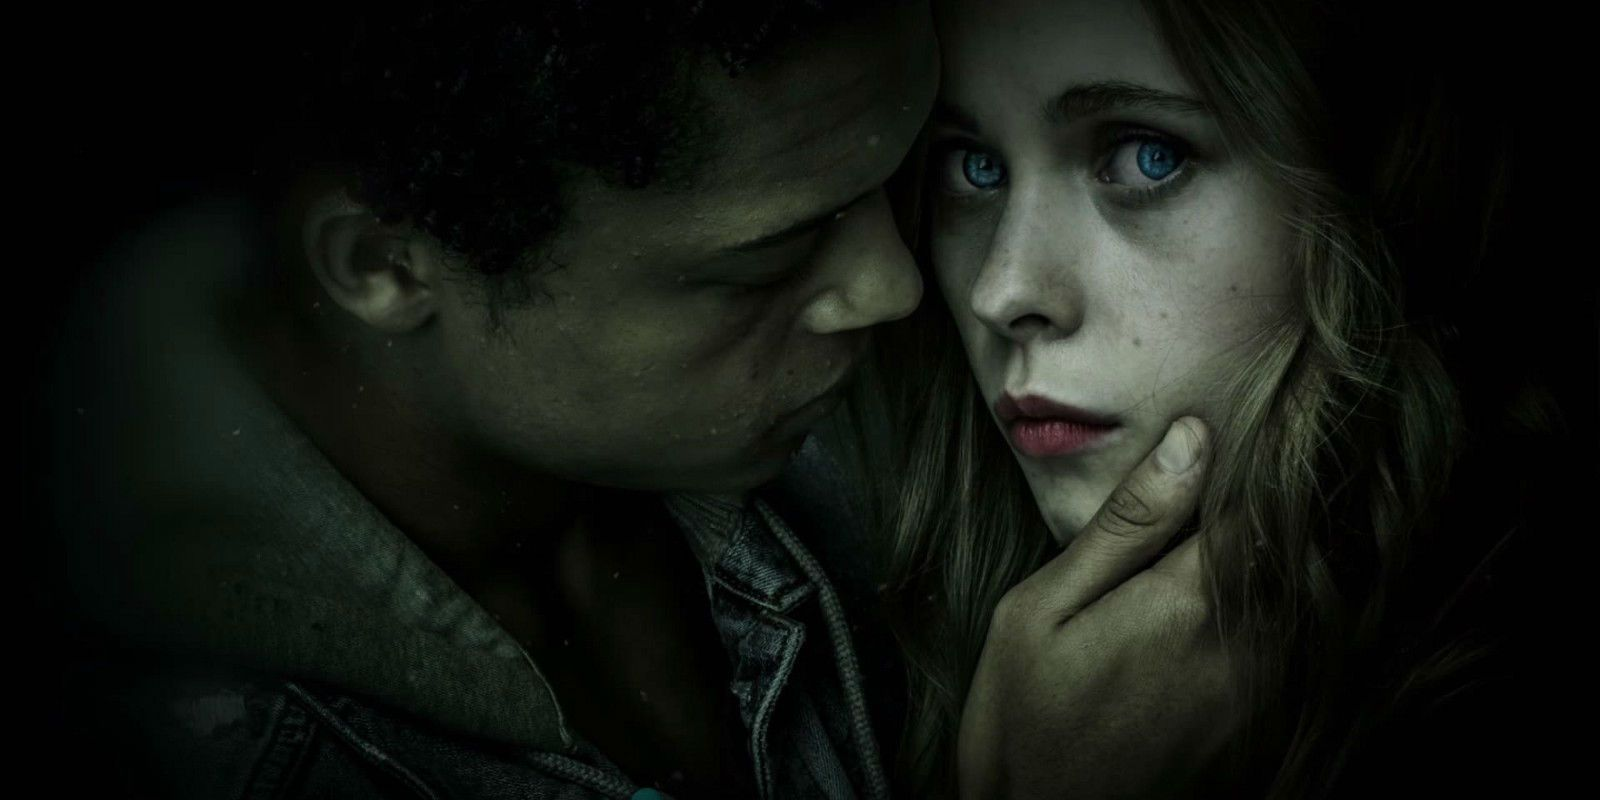 The Innocents Serie